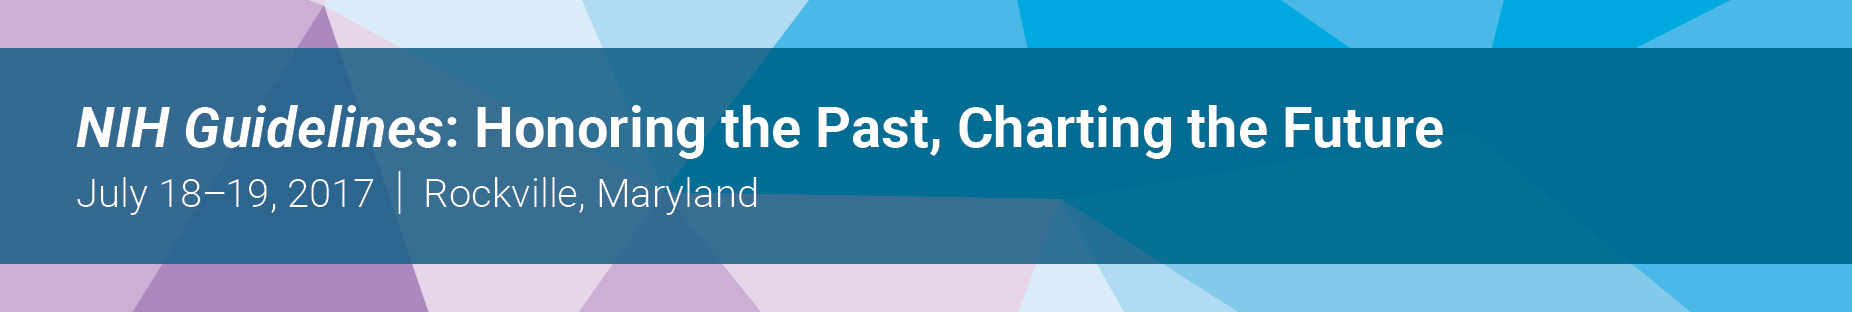 NIH Guidelines: Honoring the Past, Charting the Future Workshop